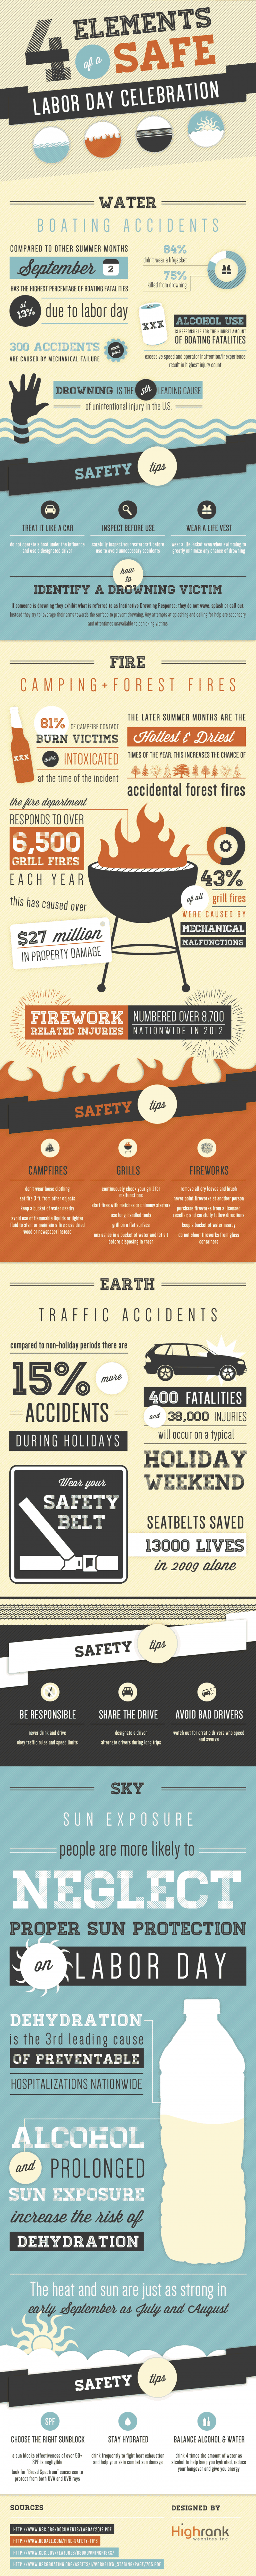 Labor Day Safety Information Infographic